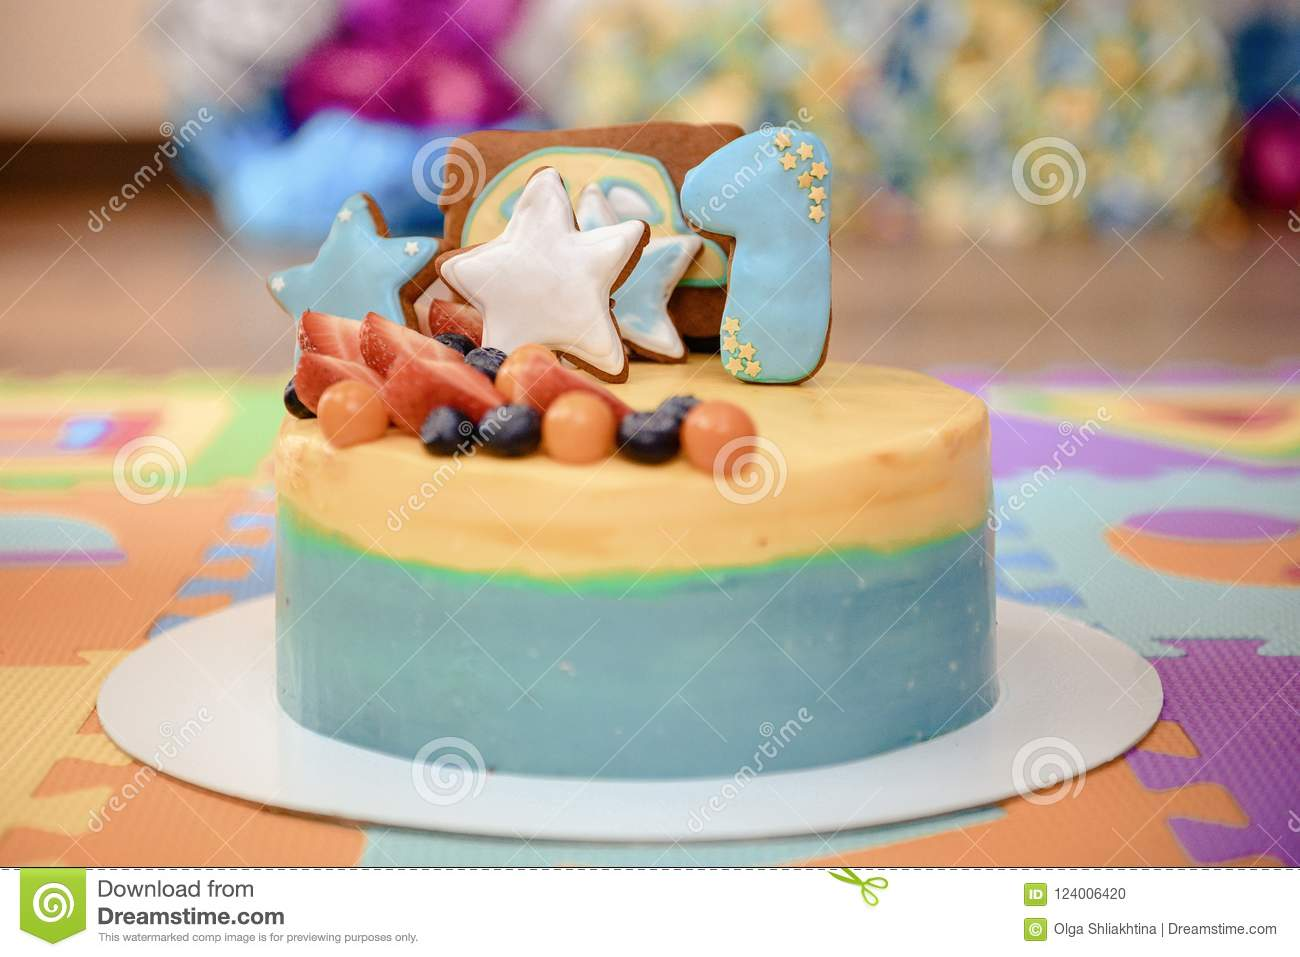 Details Of A First Year Birthday Cake In Blue For Boy Stock Photo